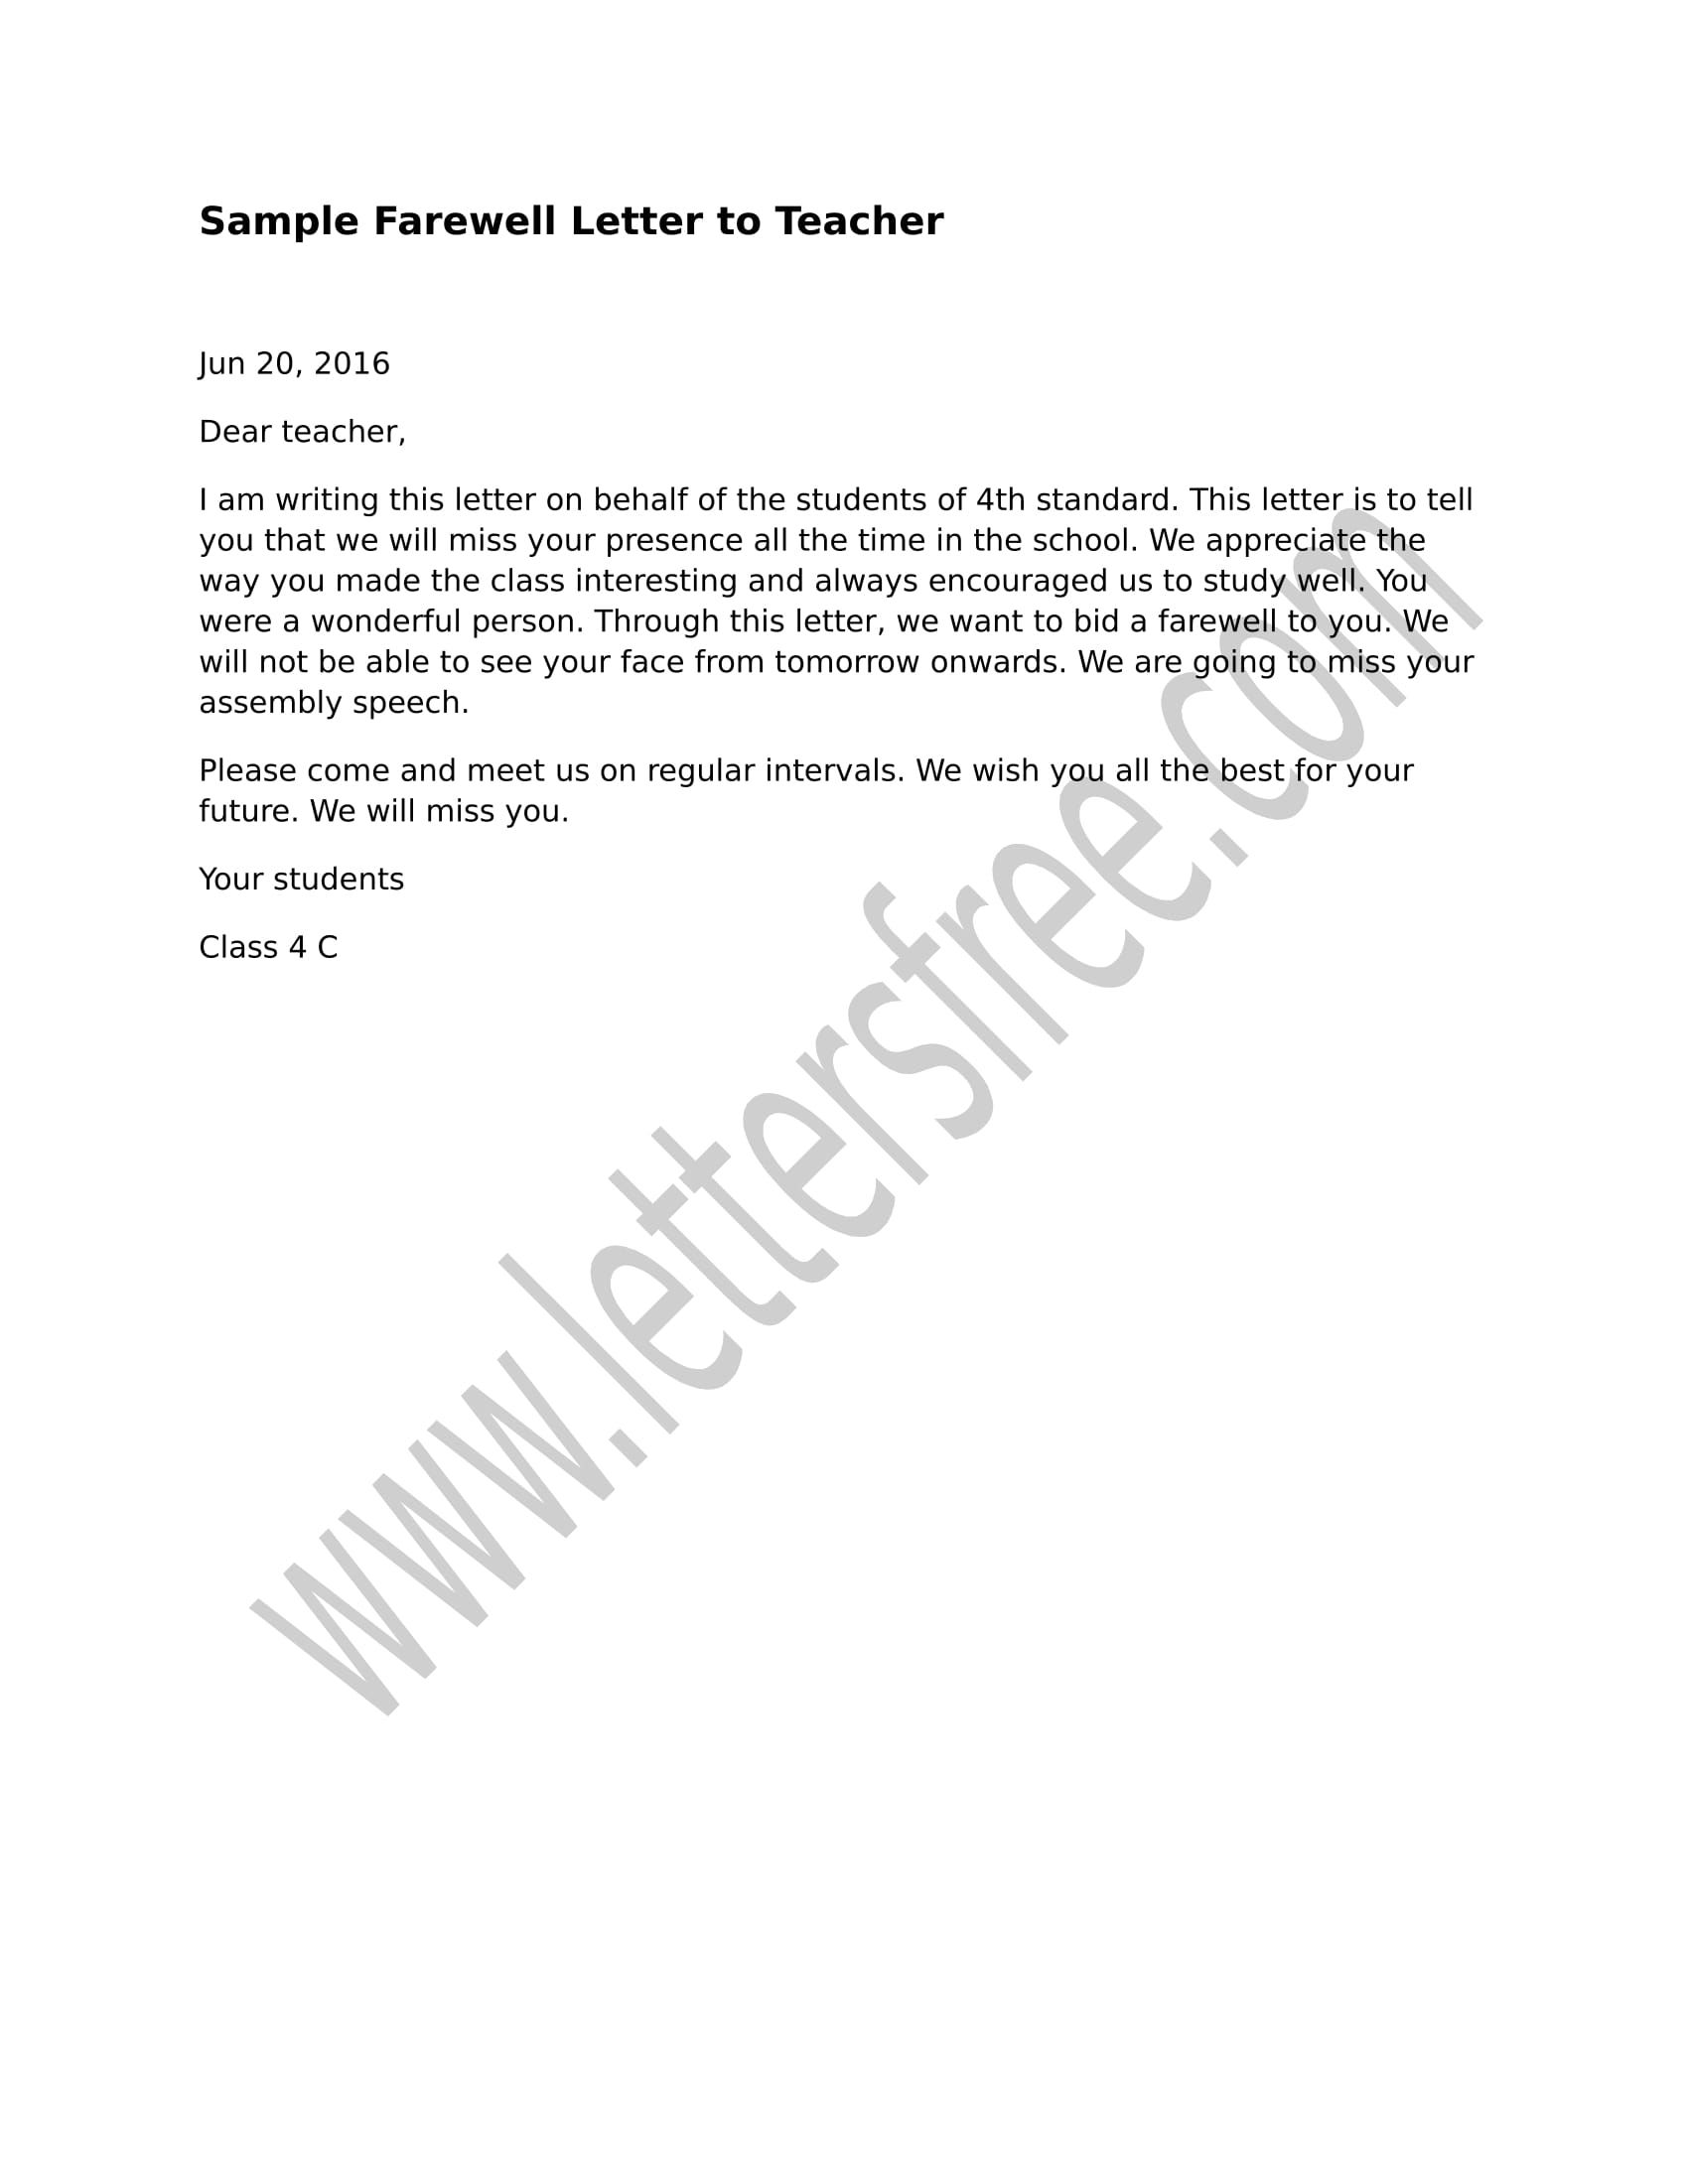 Sample Farewell Letter To Teacher To Pay Thanks For Sharing A